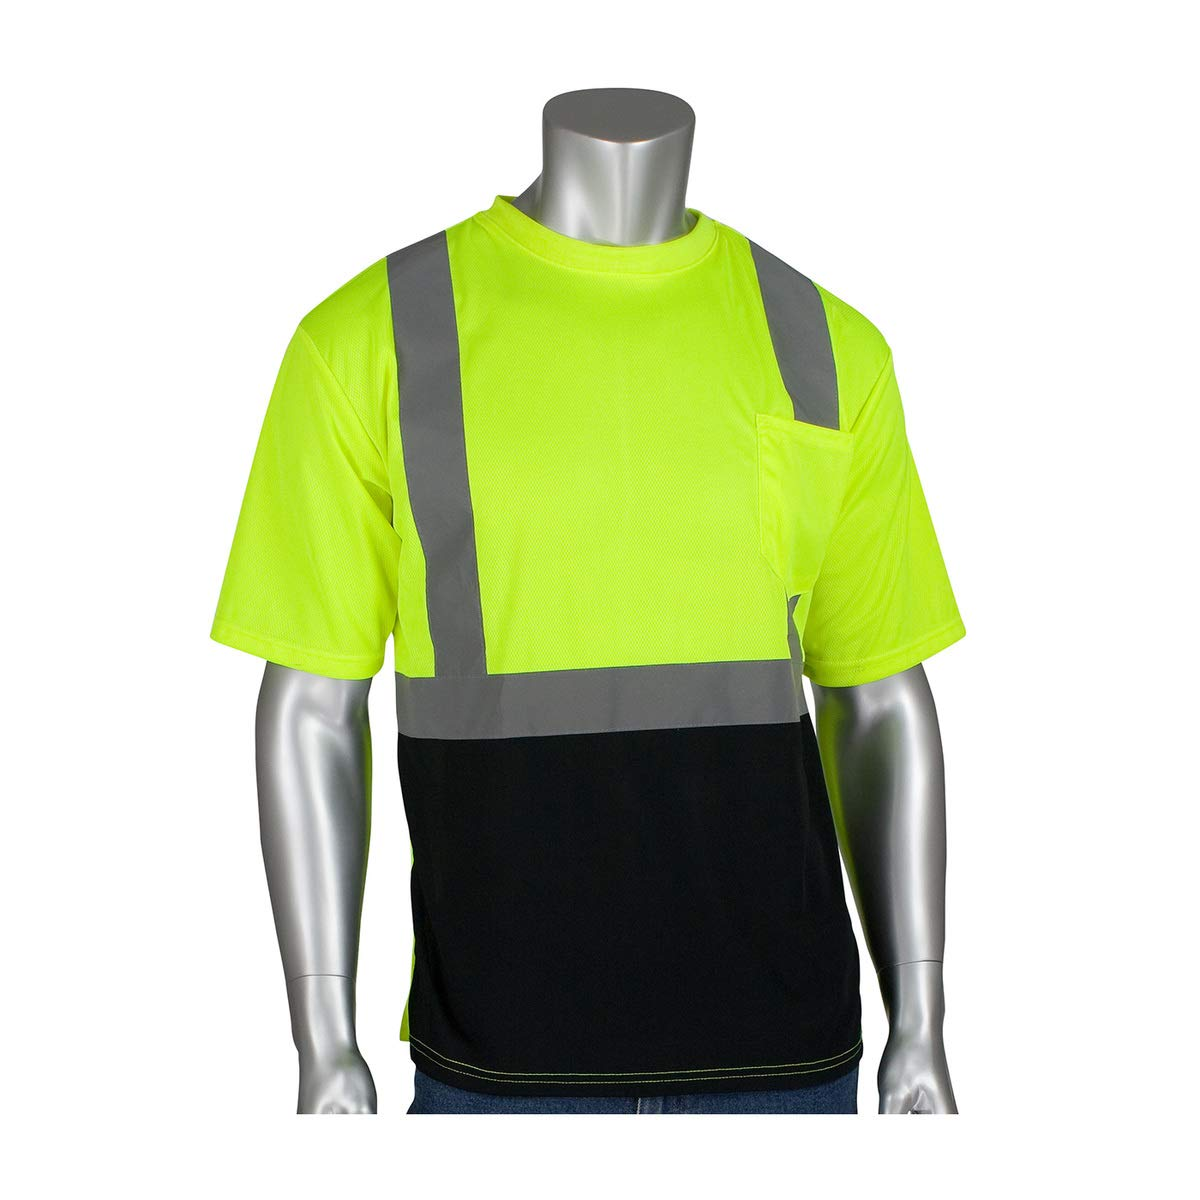 Protective Industrial Products 3X Hi-Viz Yellow/Hi-Viz Orange 1 Polyester/Birdseye Mesh Two-Tone Short Sleeve Shirt